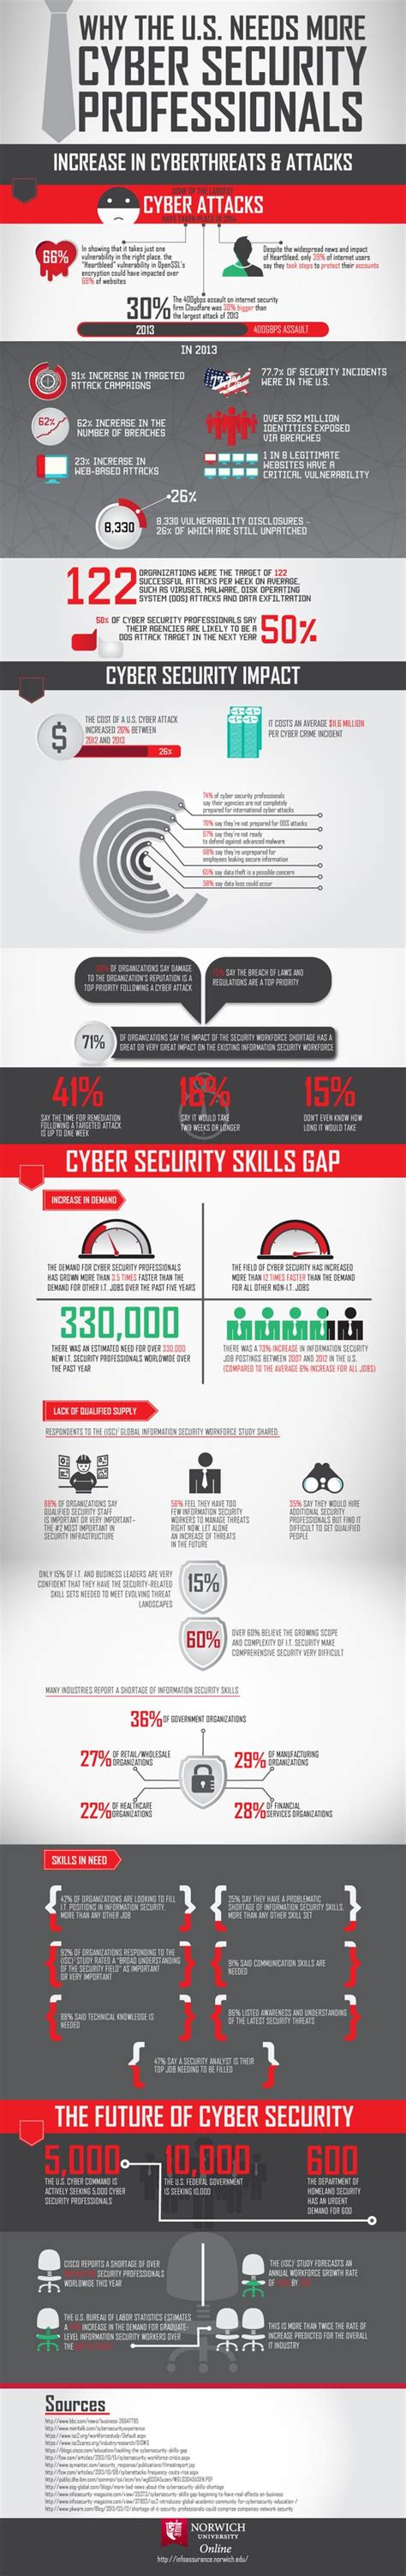 Why The Us Needs More Cyber Security Professionals. Free Conference Call Skype Movers Lombard Il. Isle Of Palms Activities Lifetime Web Hosting. Time Of Flight Secondary Ion Mass Spectrometry. Asphalt Paving St Louis Best Checking Acount. Medical Malpractice Attorneys. Southernsun Asset Management. Home Security In Houston How To Find An Image. How Long Can You Defer Student Loans